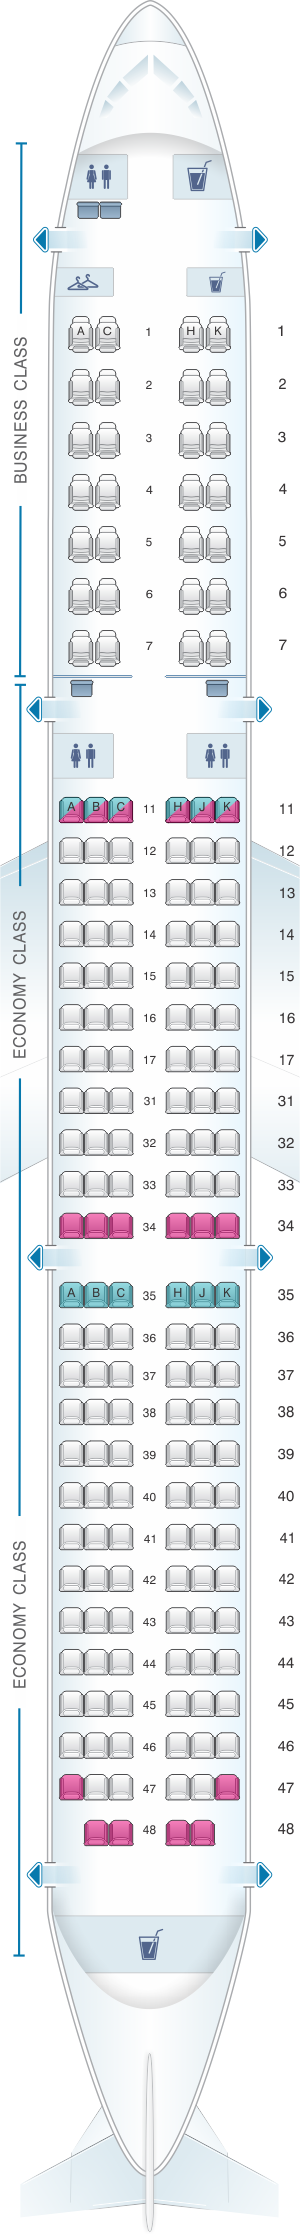 Seat map for Air Astana Airbus A321 231 Config.1